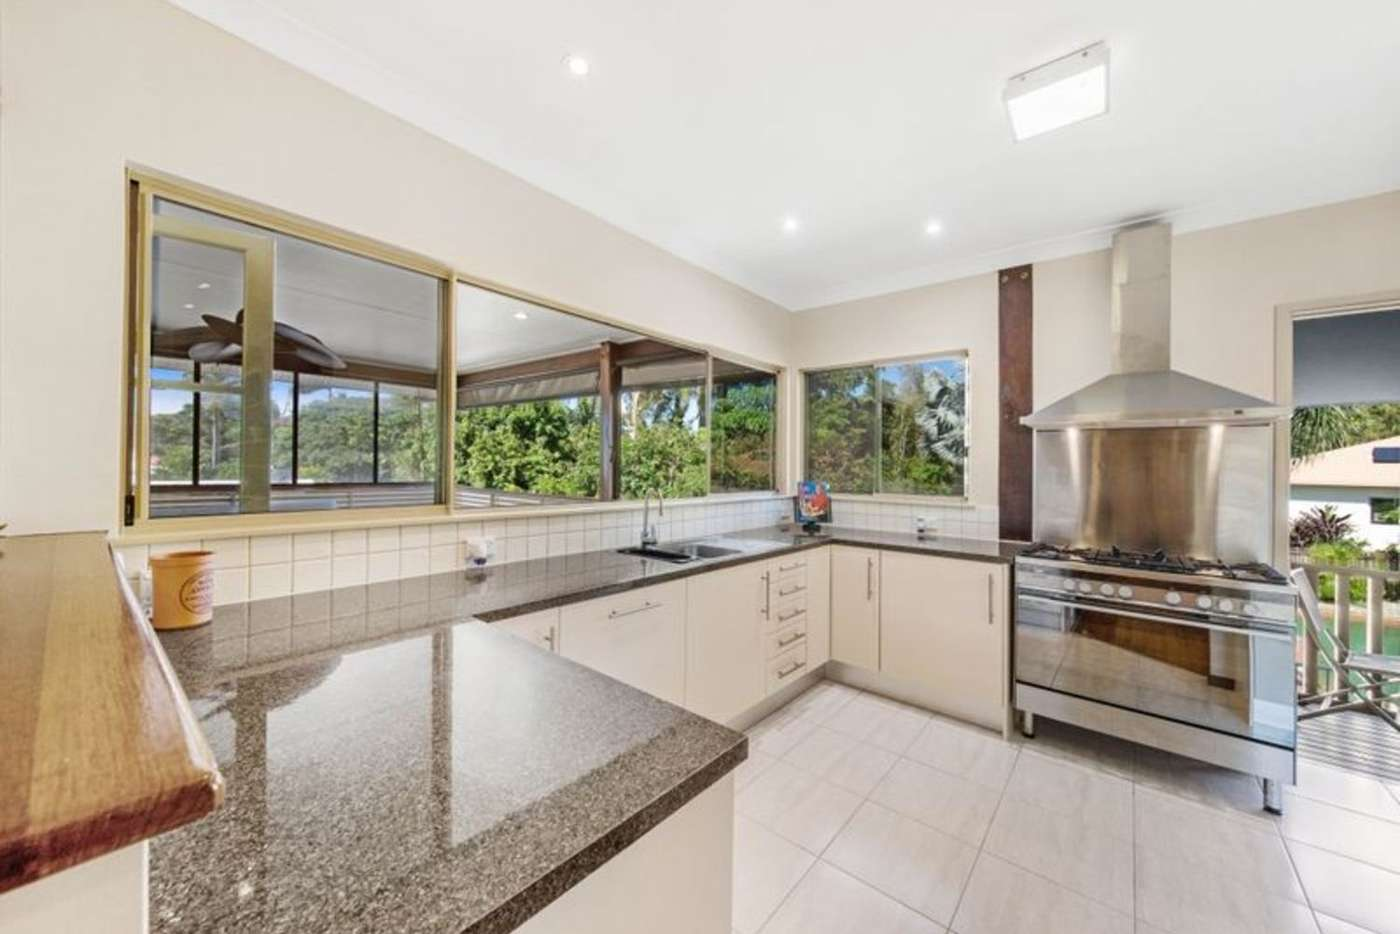 Fifth view of Homely house listing, 30 Beaver Street, Clifton Beach QLD 4879